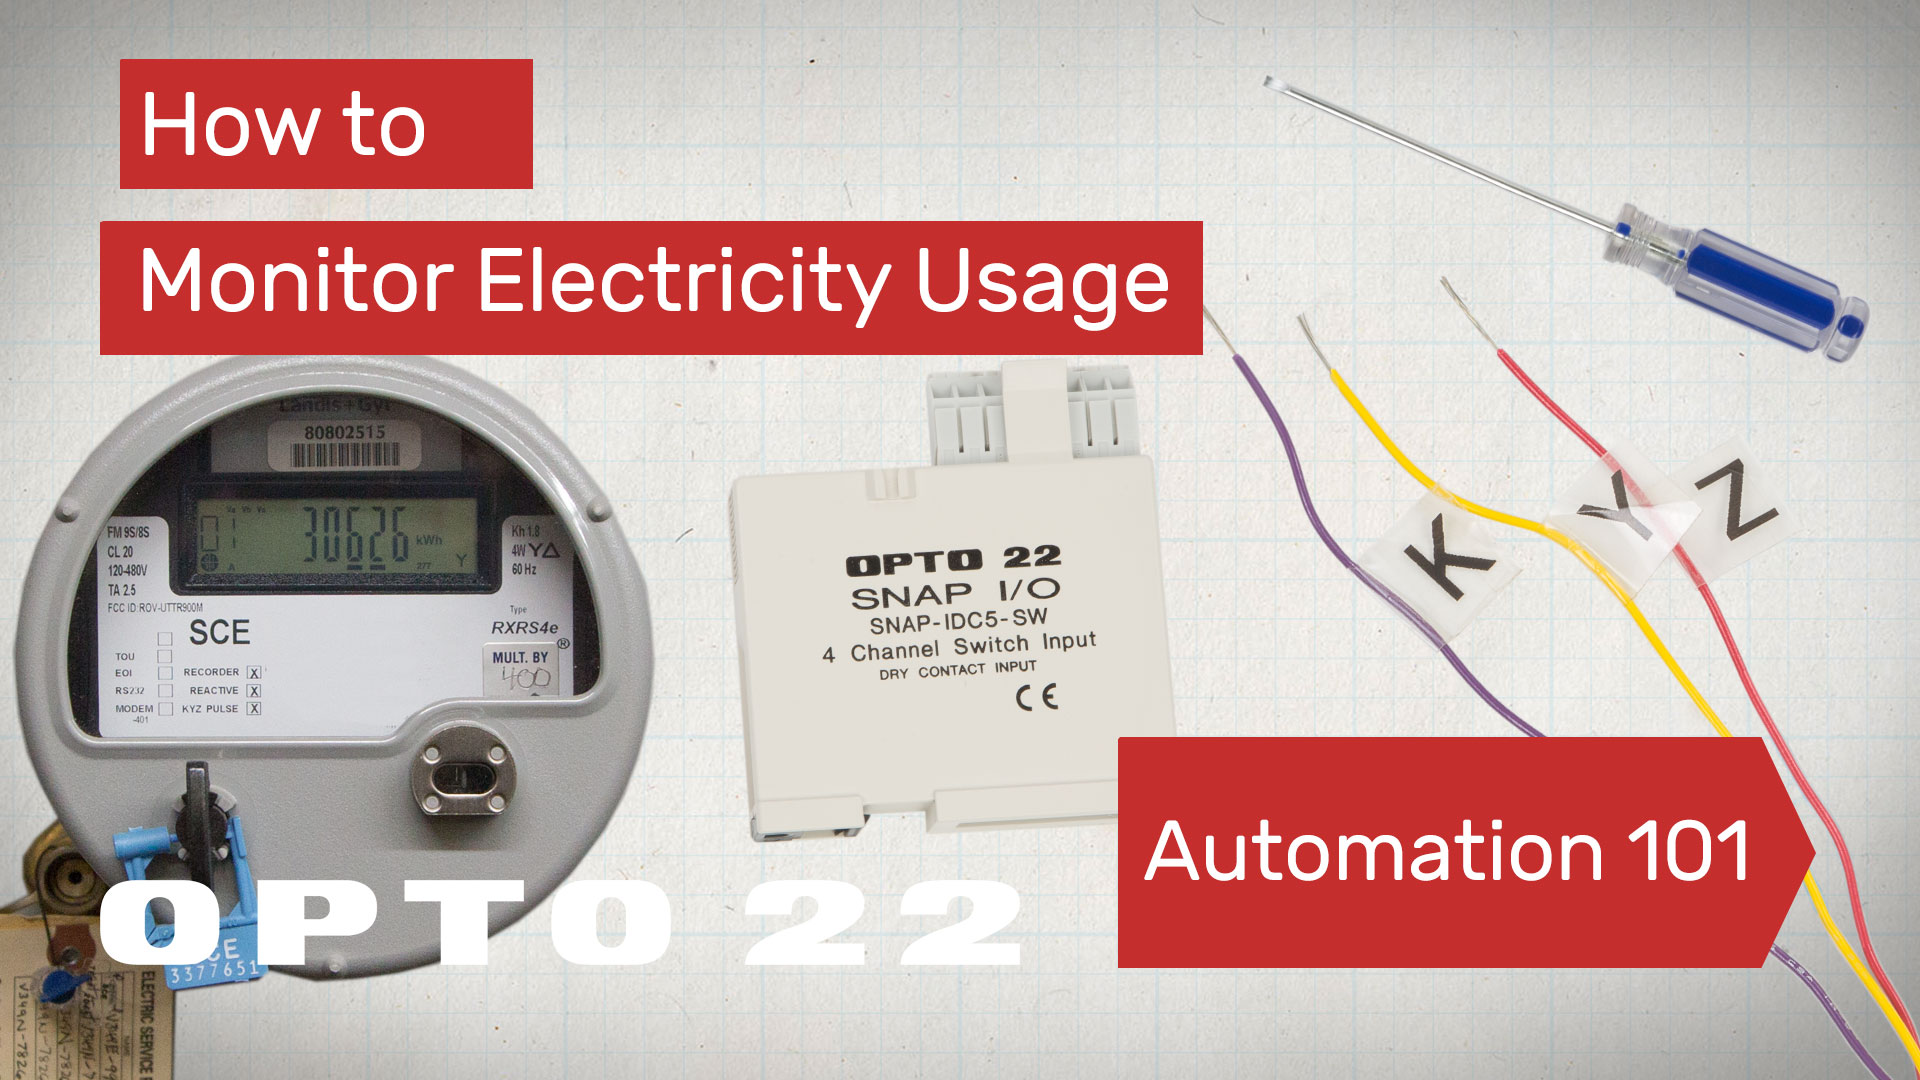 monitor electricity automation 101 video rh info opto22 com